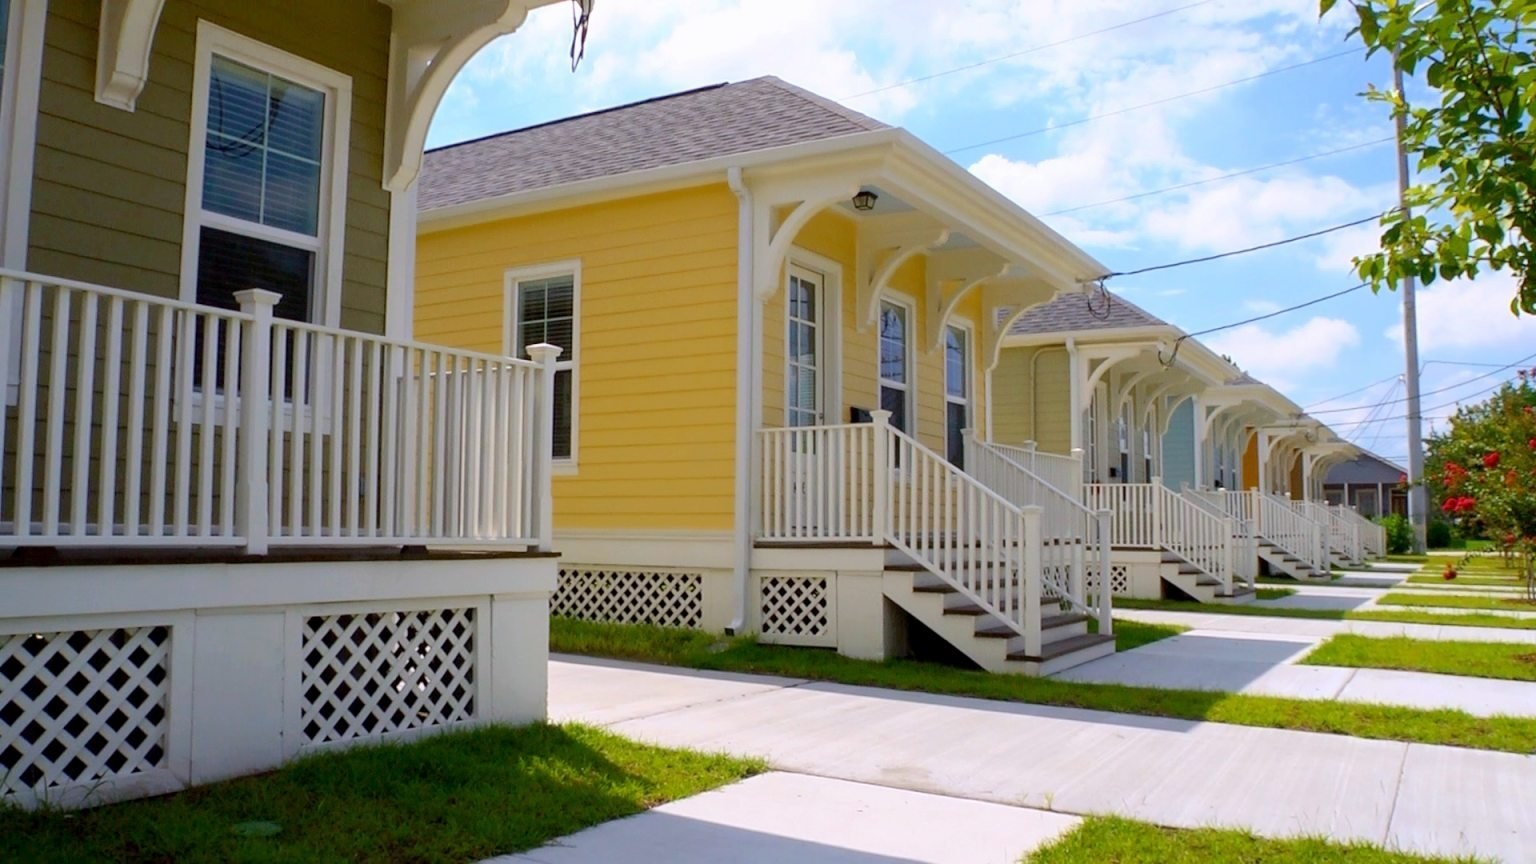 Best Apartments Charming Place Of Katrina Cottages For Sale With Pictures